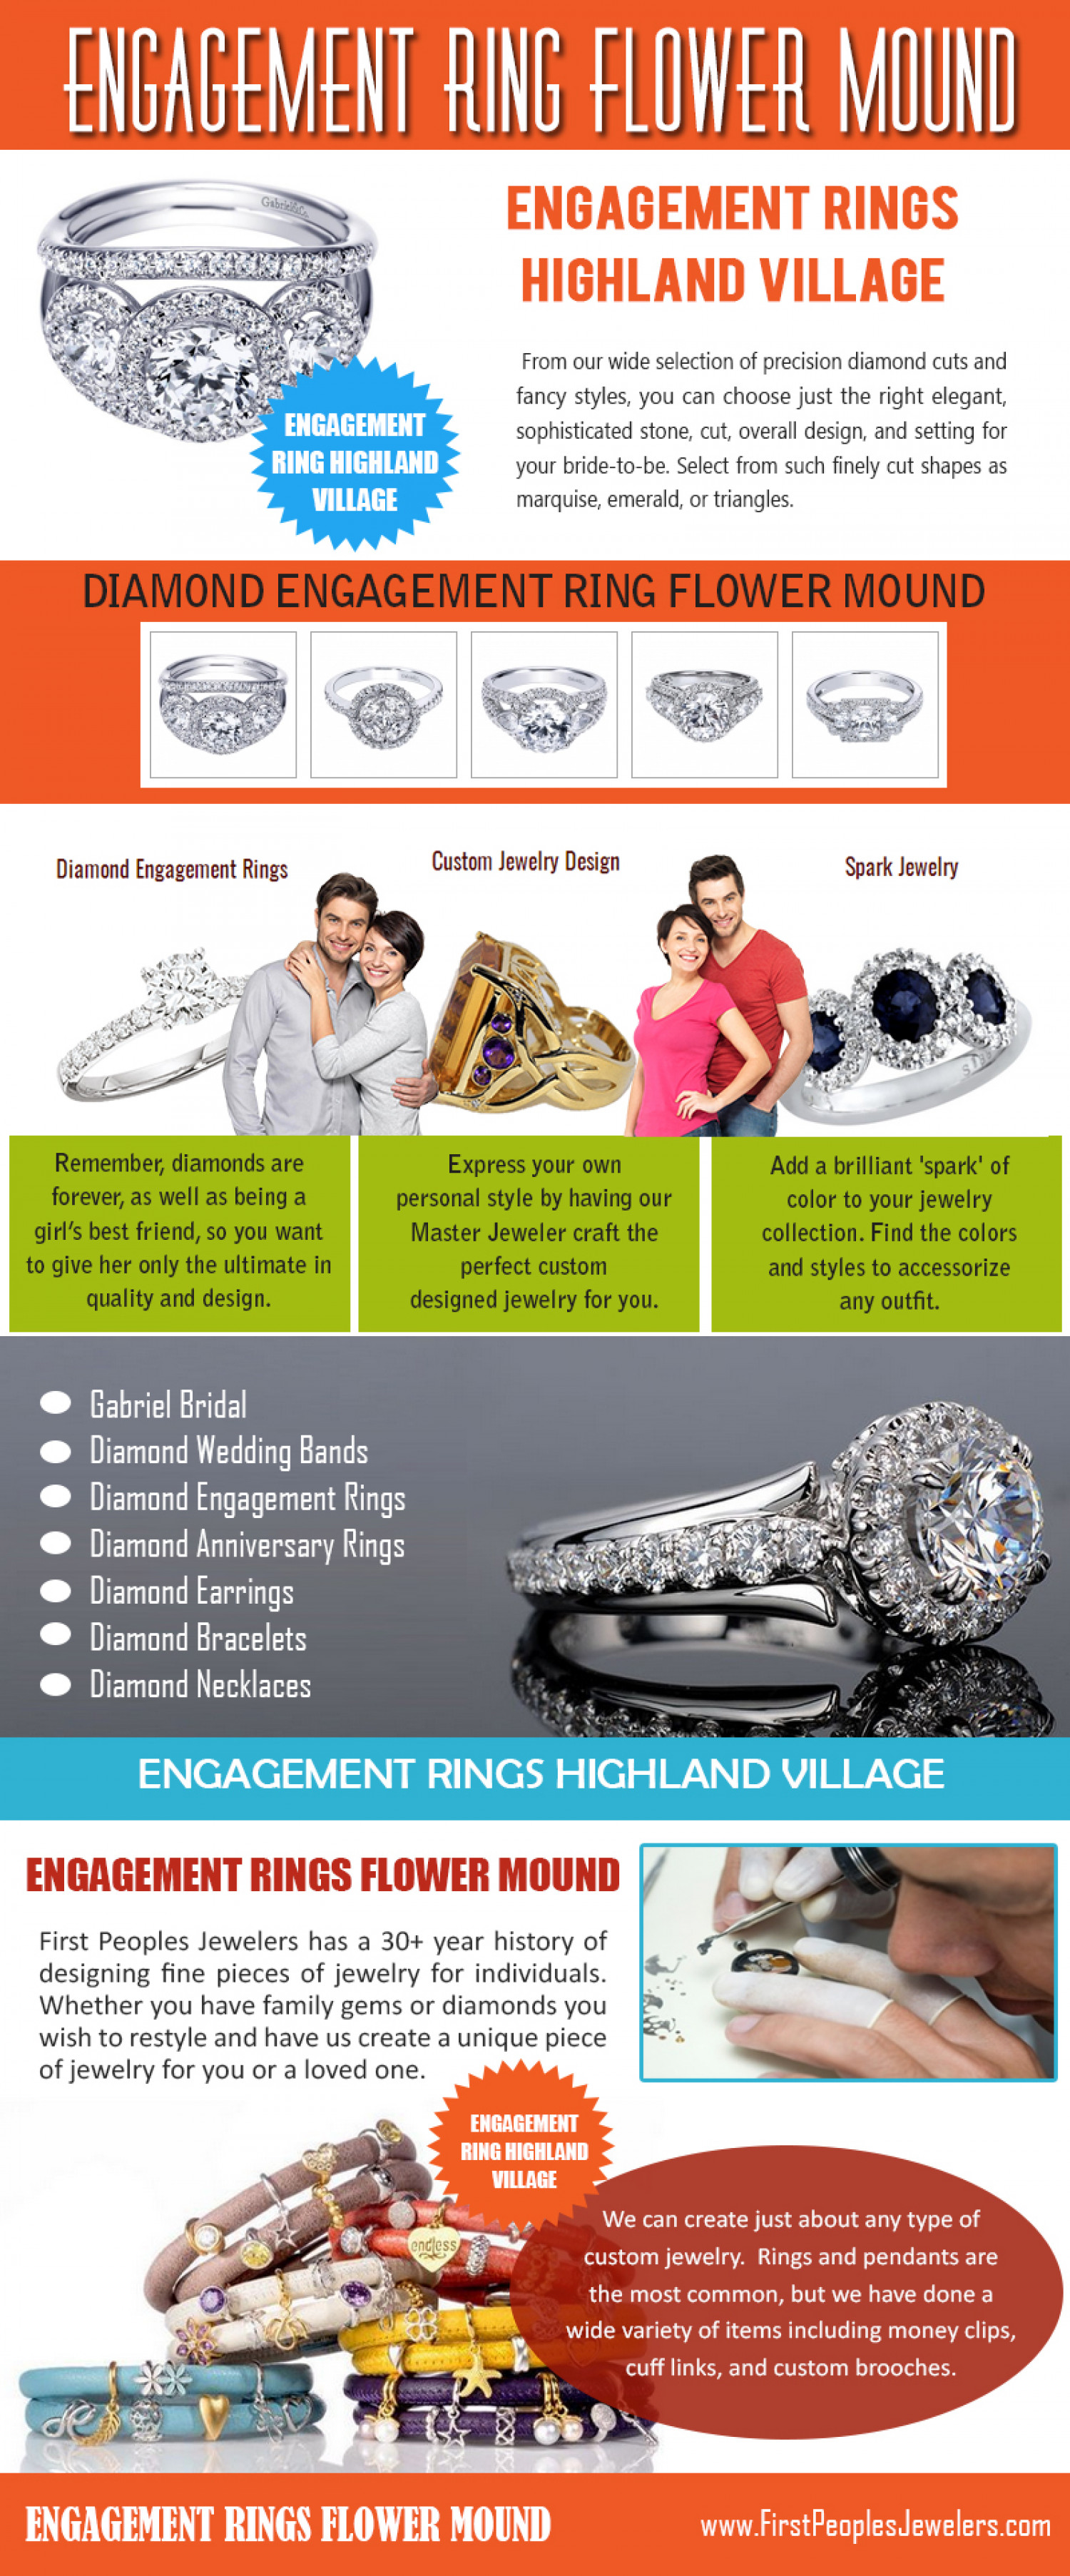 Engagement Ring Flower Mound Infographic